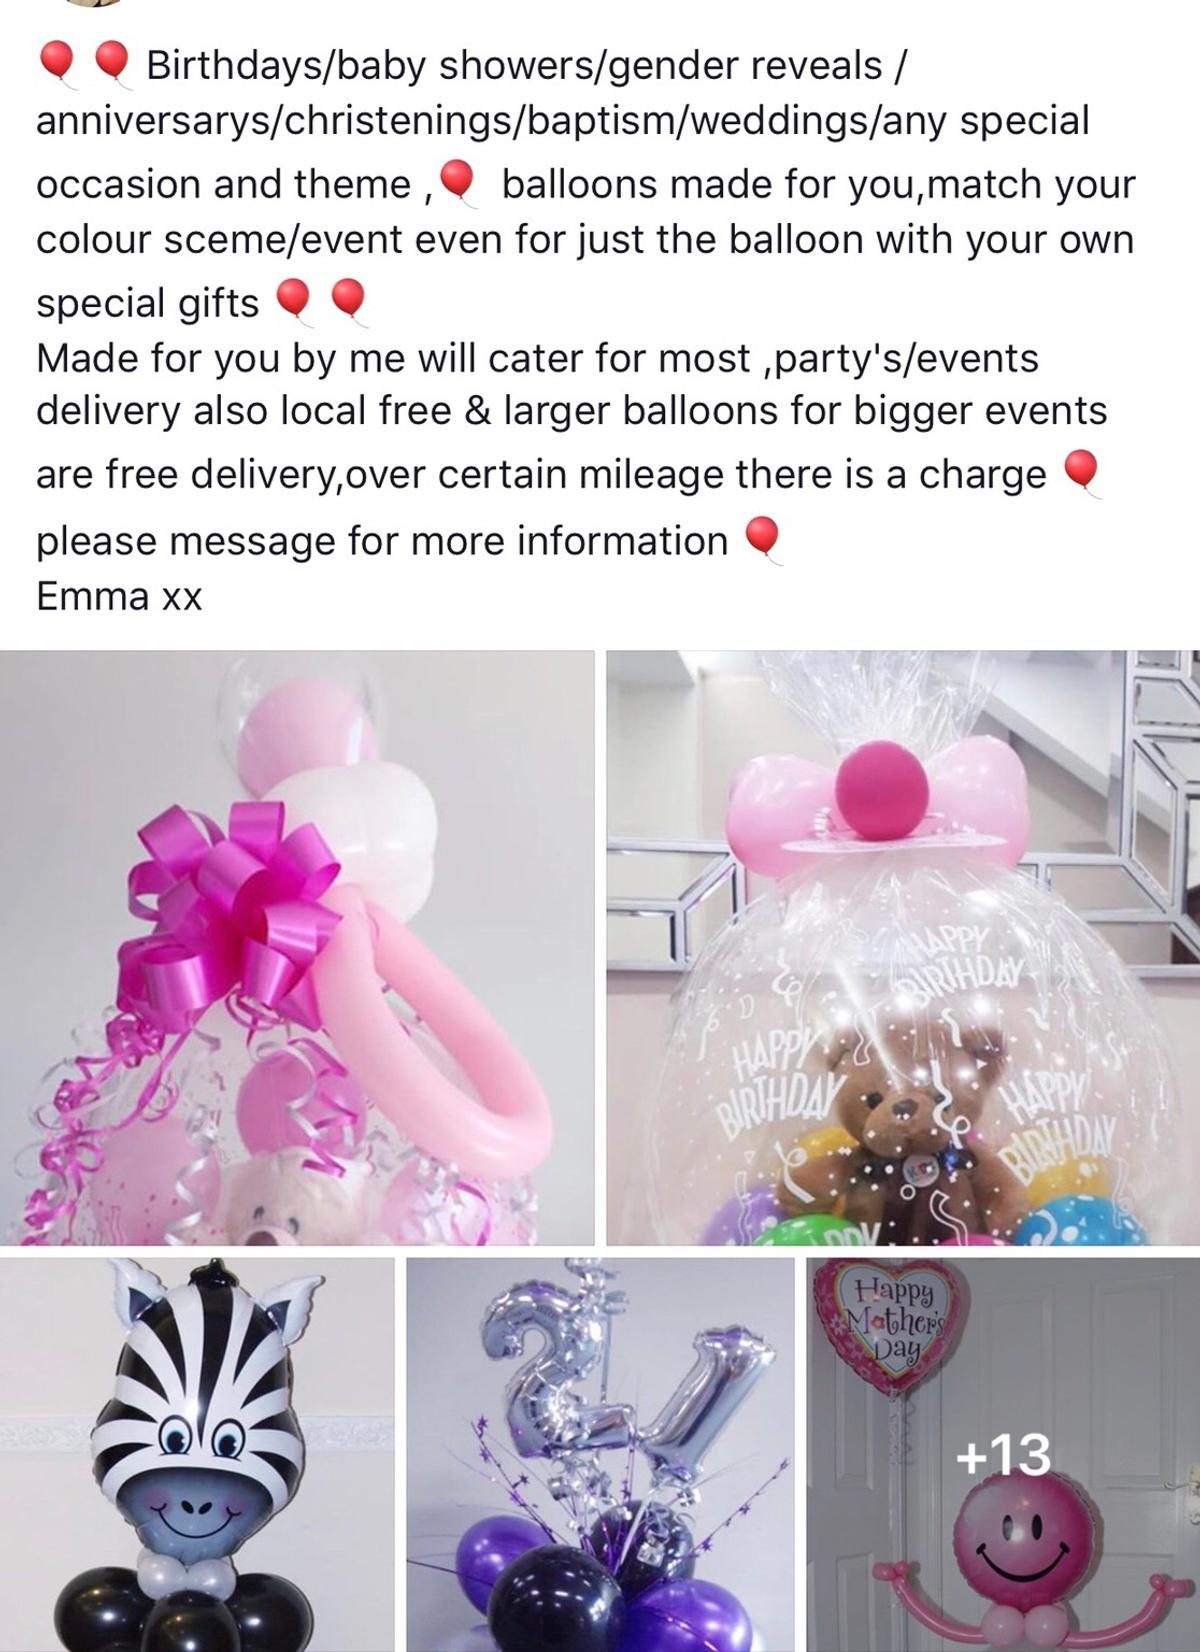 Any balloons for any occasion Father's Day Birthday Christening Weddings Gender reveal Popping balloons You name it  Message for prices and details